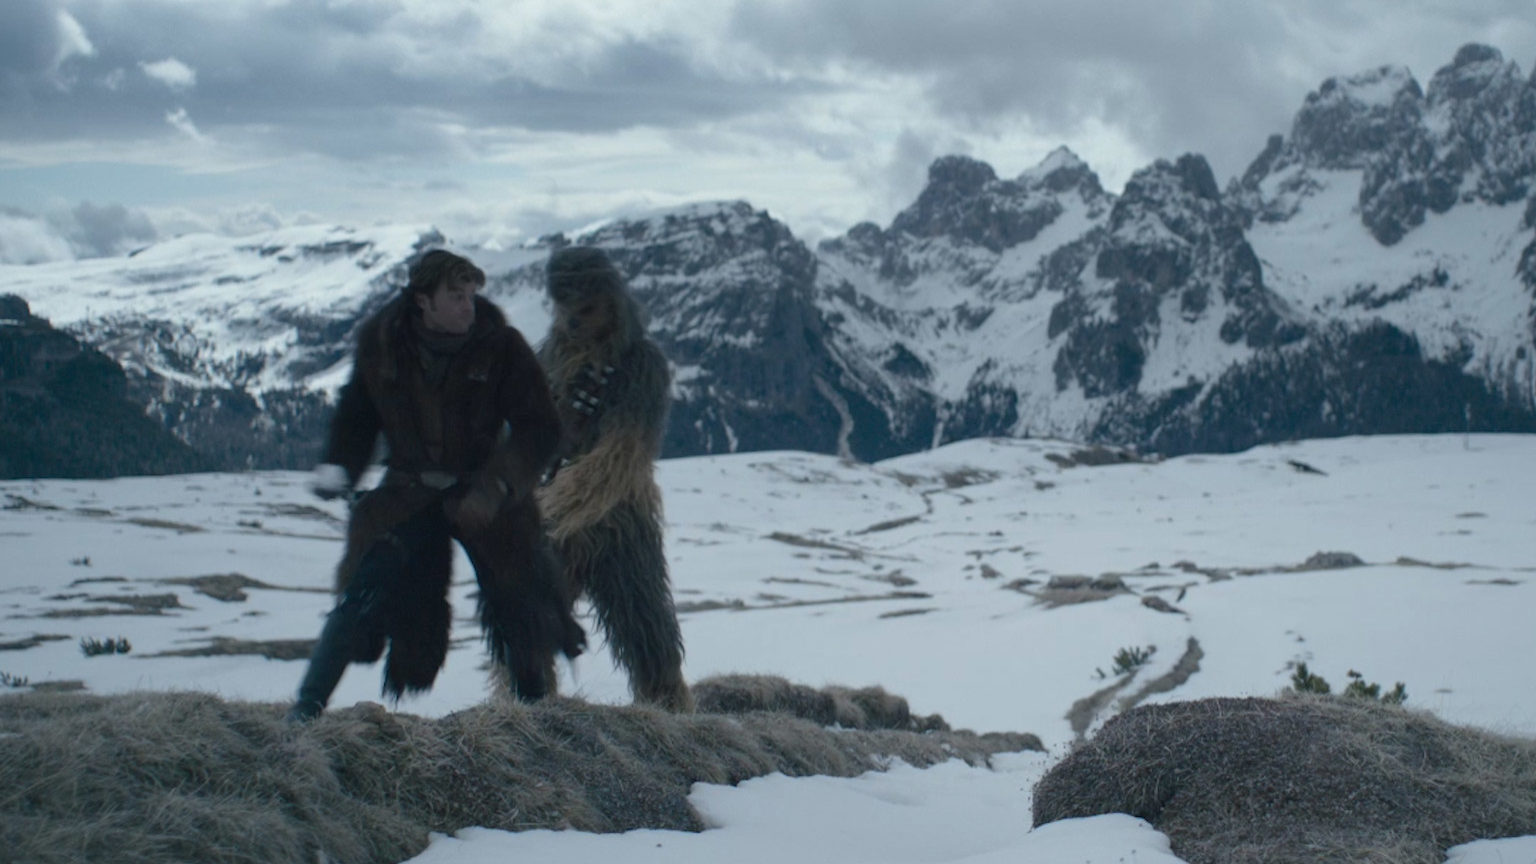 Chewbacca and Han Solo have a snowball fight on Vandor in a deleted scene from Solo: A Star Wars Story.